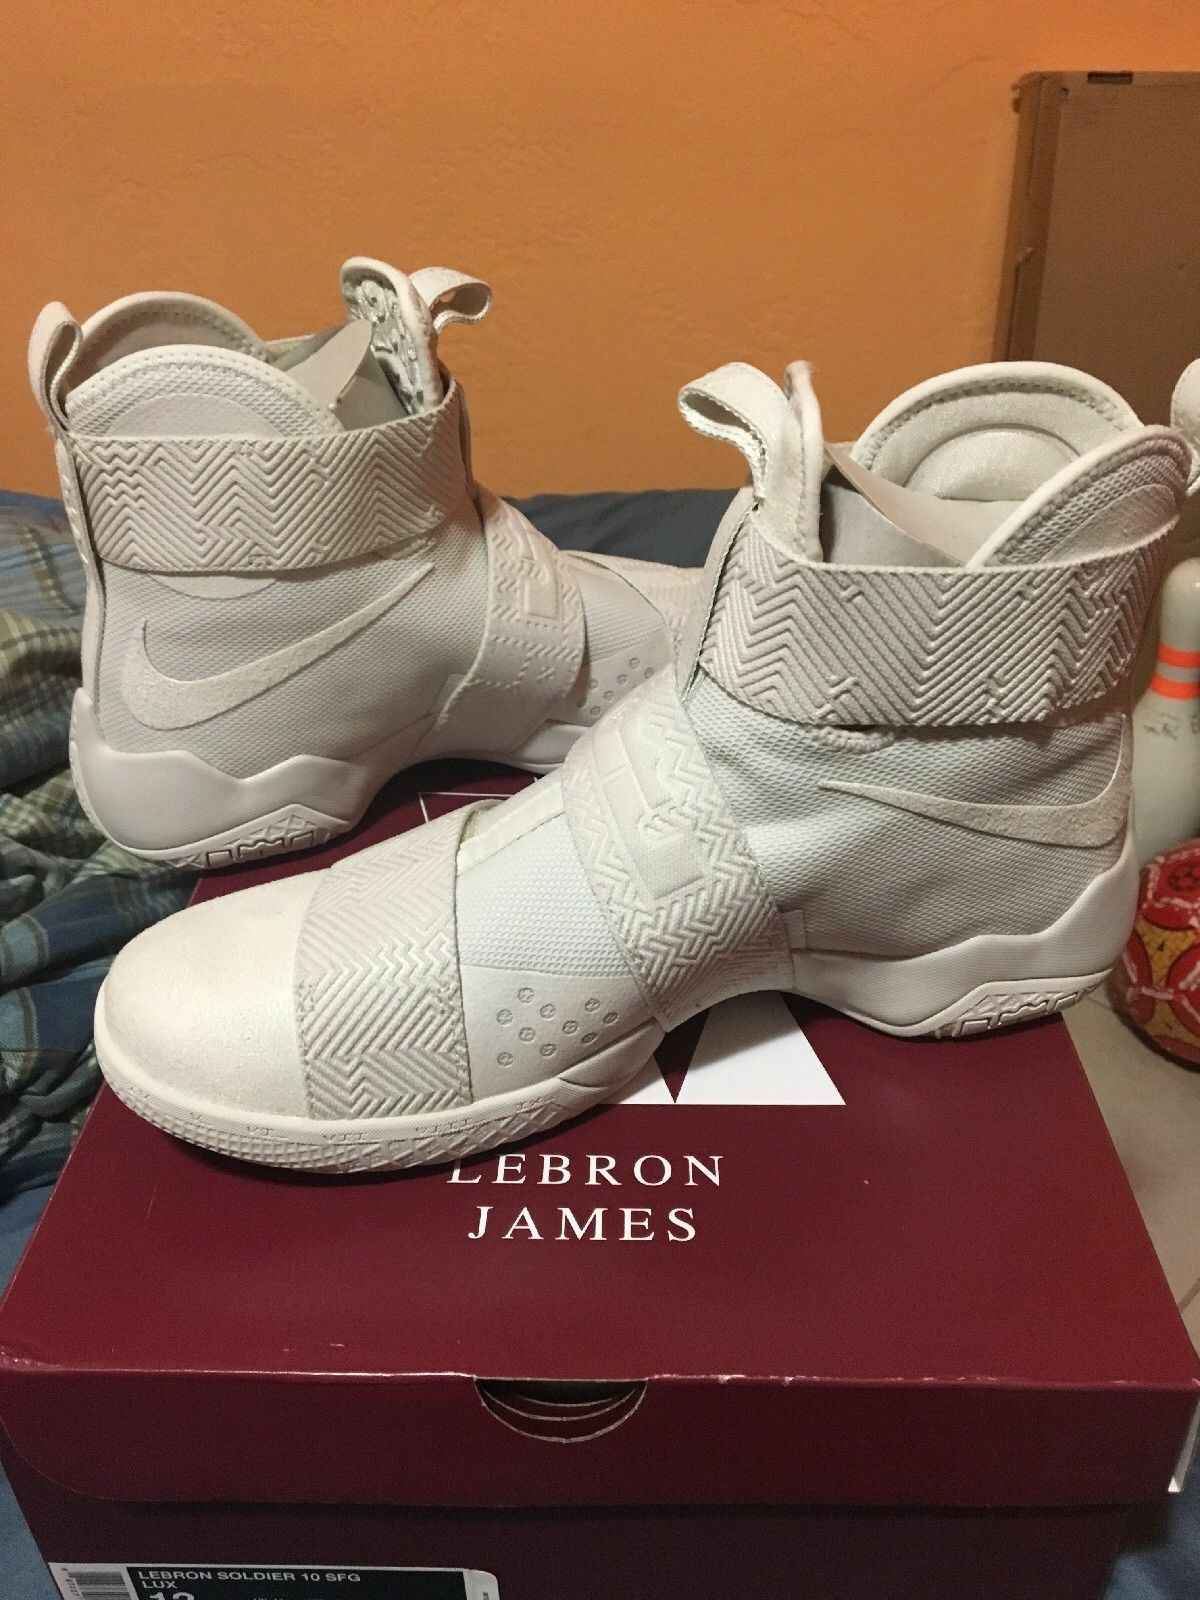 NIKE SHOES LEBRON SOLDIER 10 SFG LUX BASKETBALL SHOES NIKE NEW MEN'S SIZE 11 d2f21e